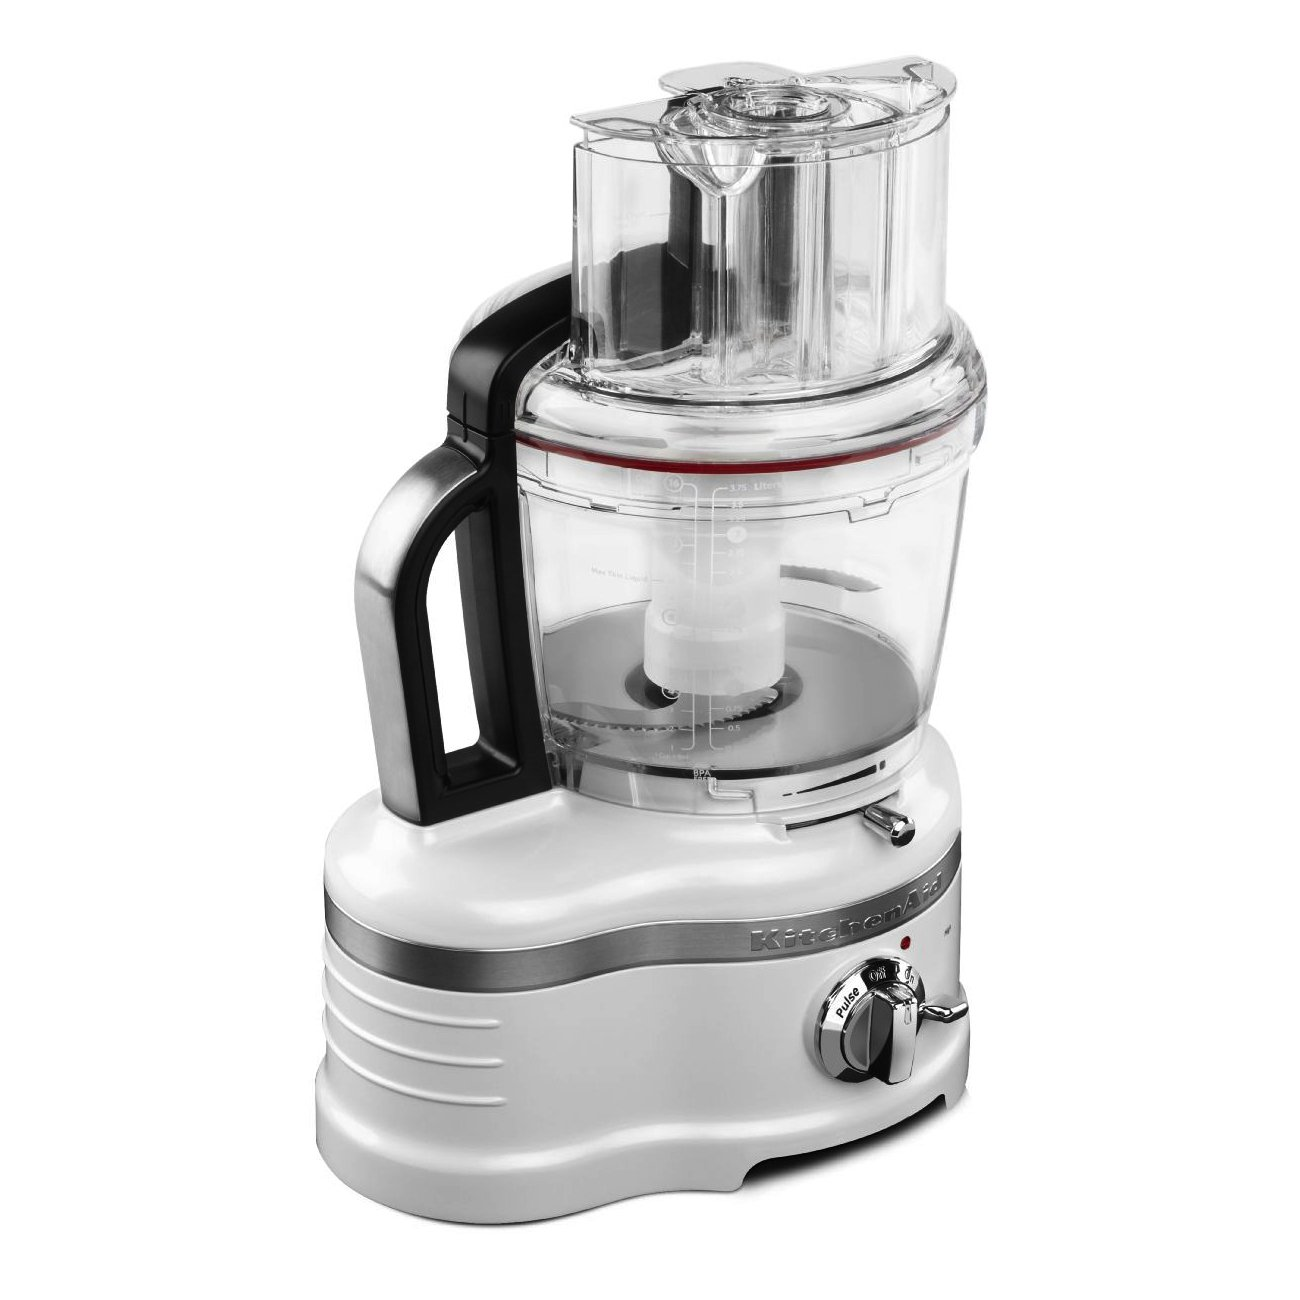 KitchenAid KFP1642FP ProLine 16 Cup Frosted Pearl White Food Processor with ExactSlice System